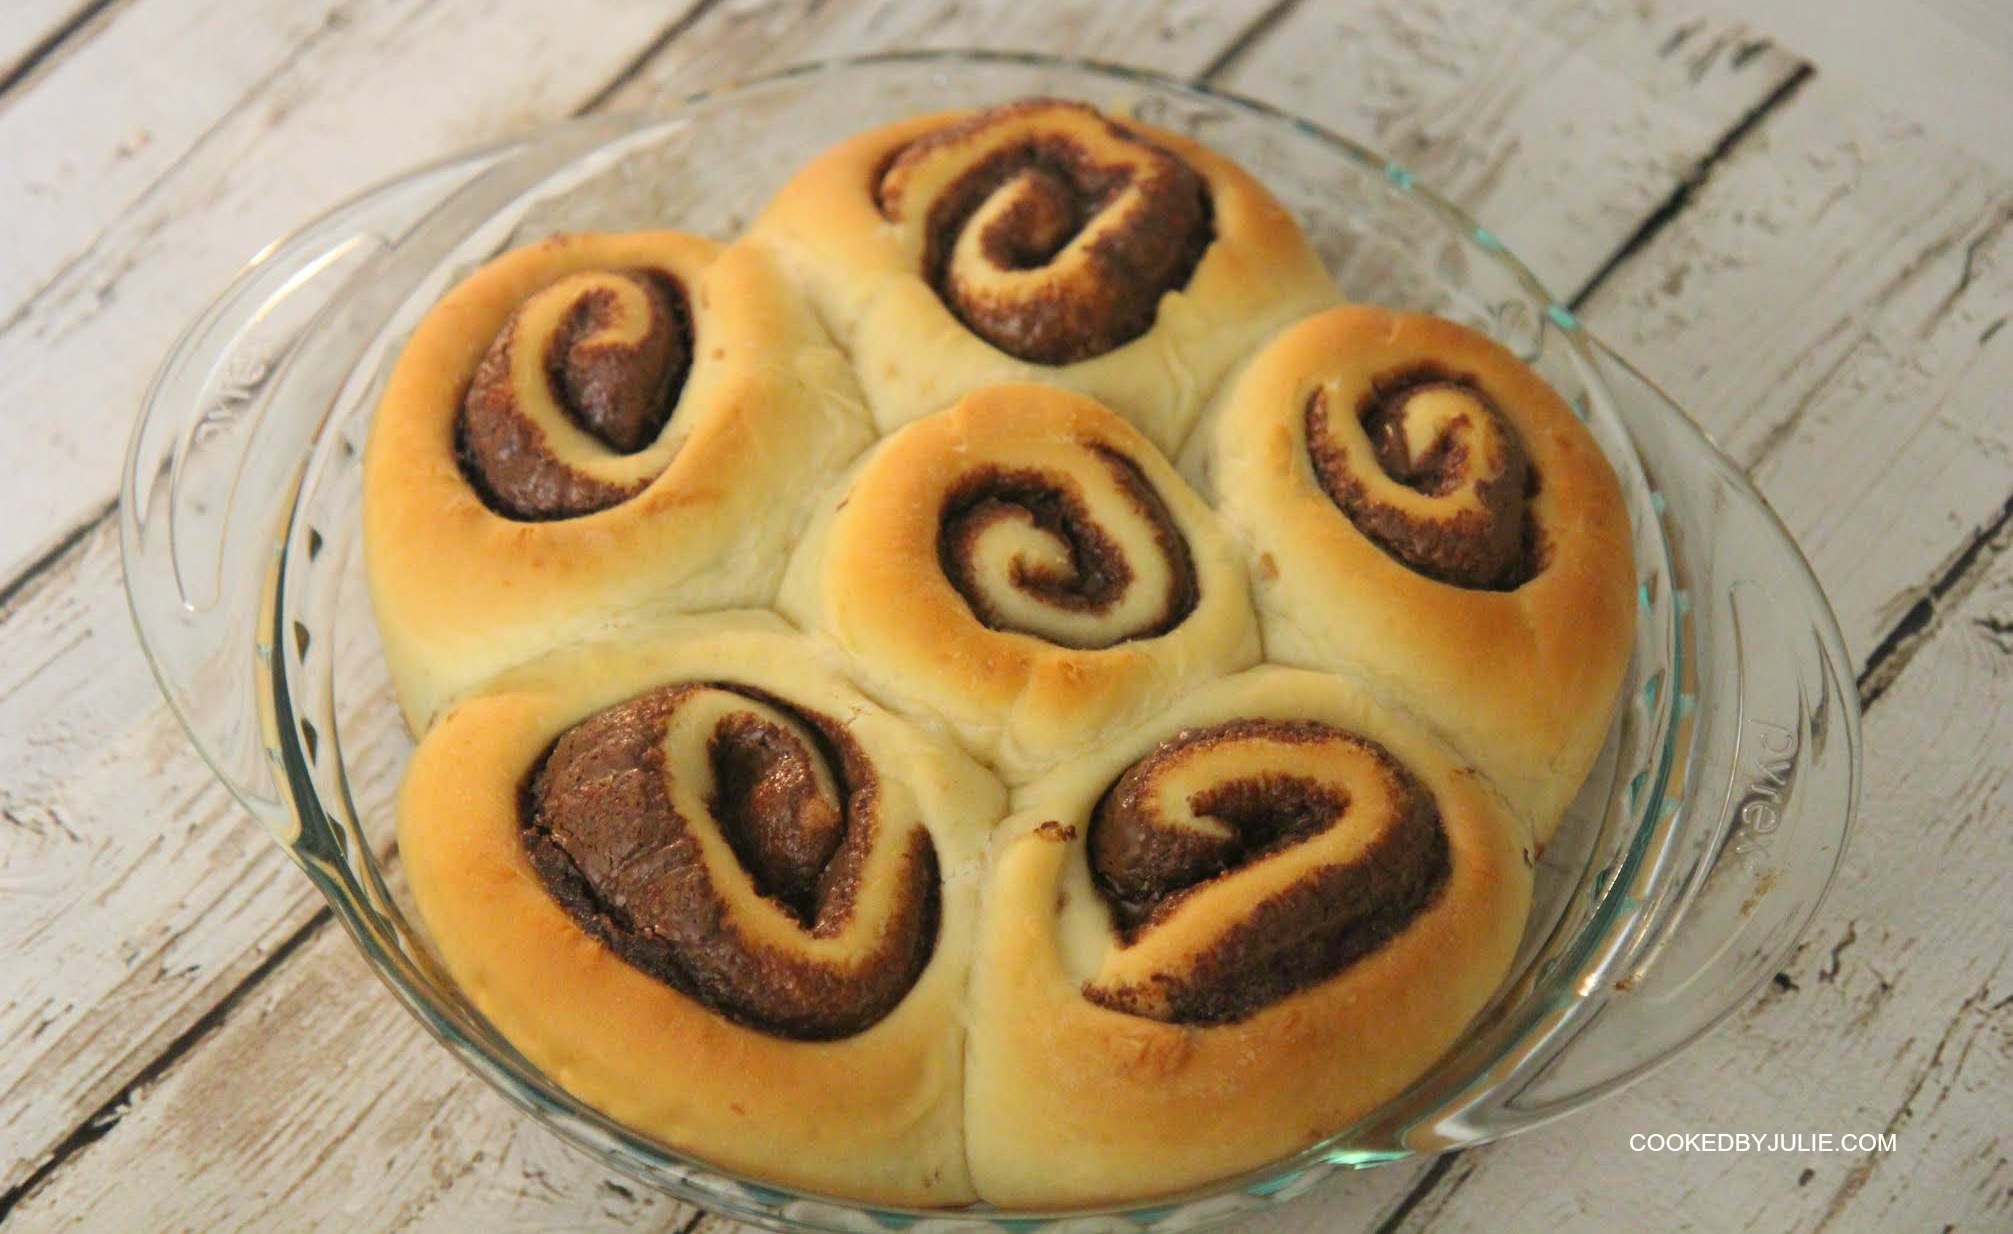 These Nutella cinnamon rolls are perfect for a weekend breakfast and go great paired with a cold glass of milk